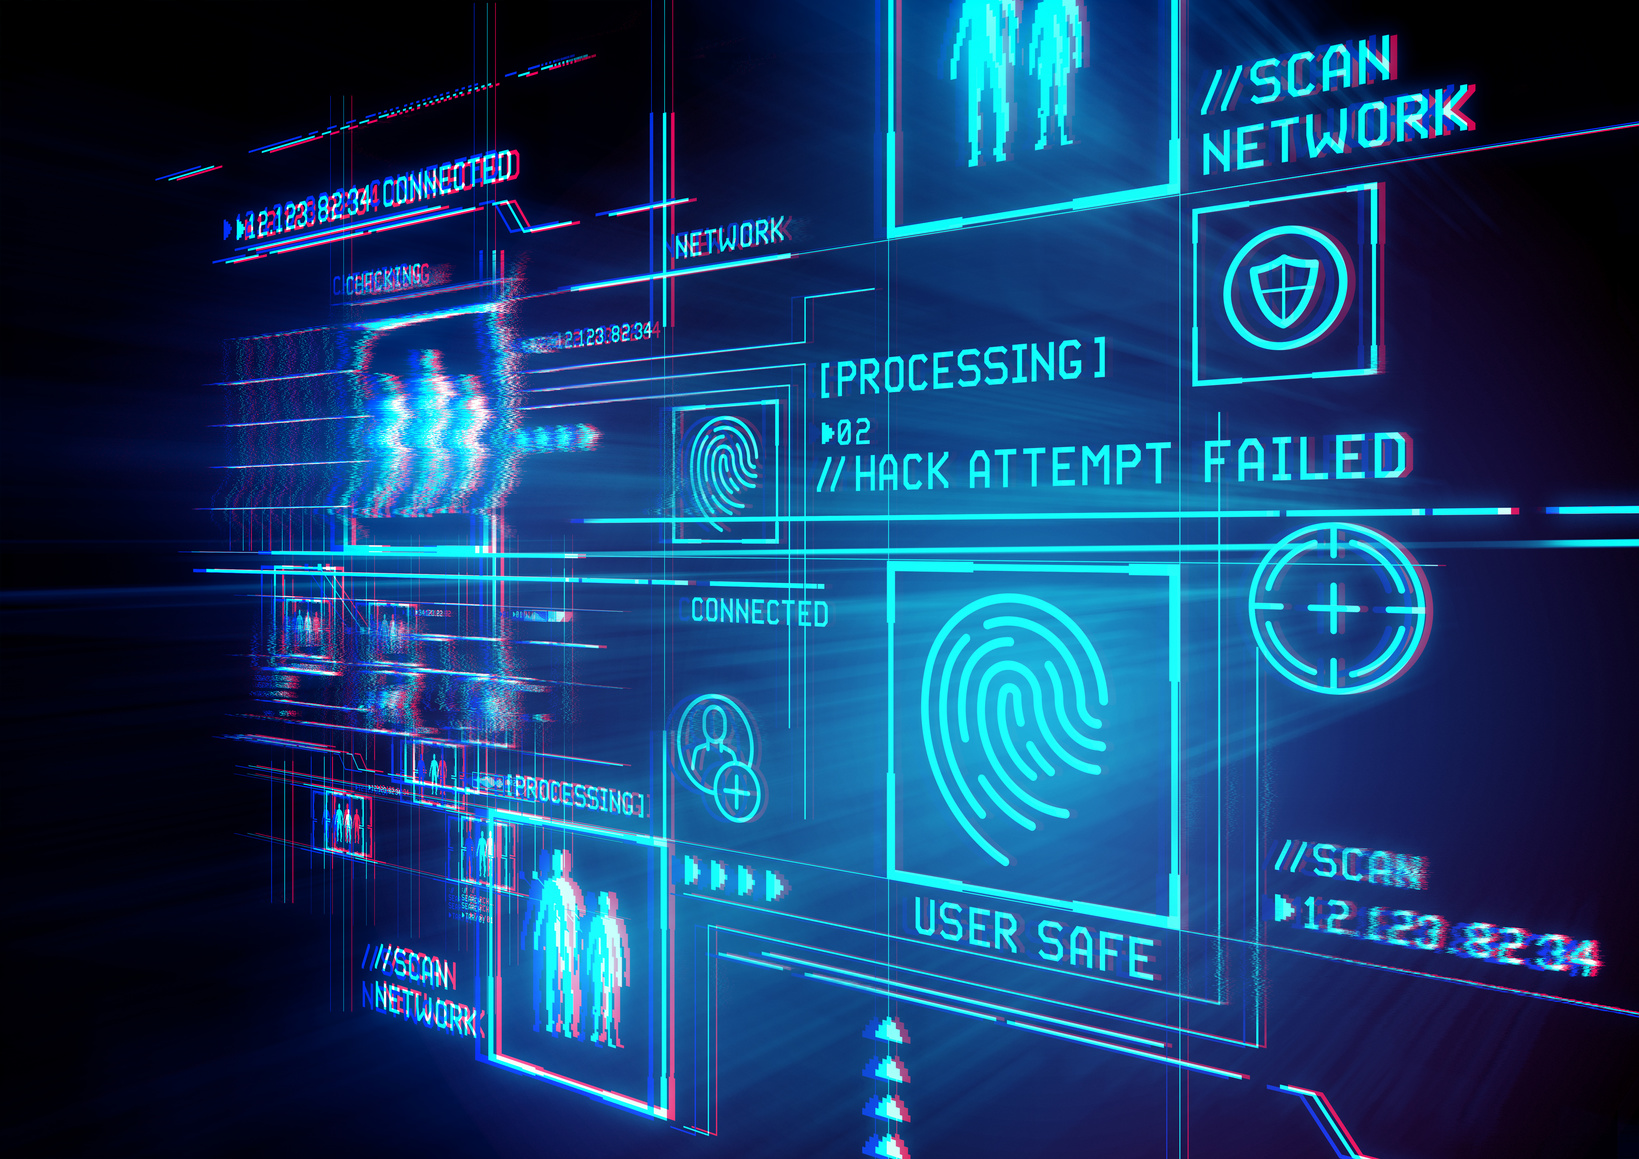 ADOPTING A RISK-BASED APPROACH TO GDPR COMPLIANCE | Accenture